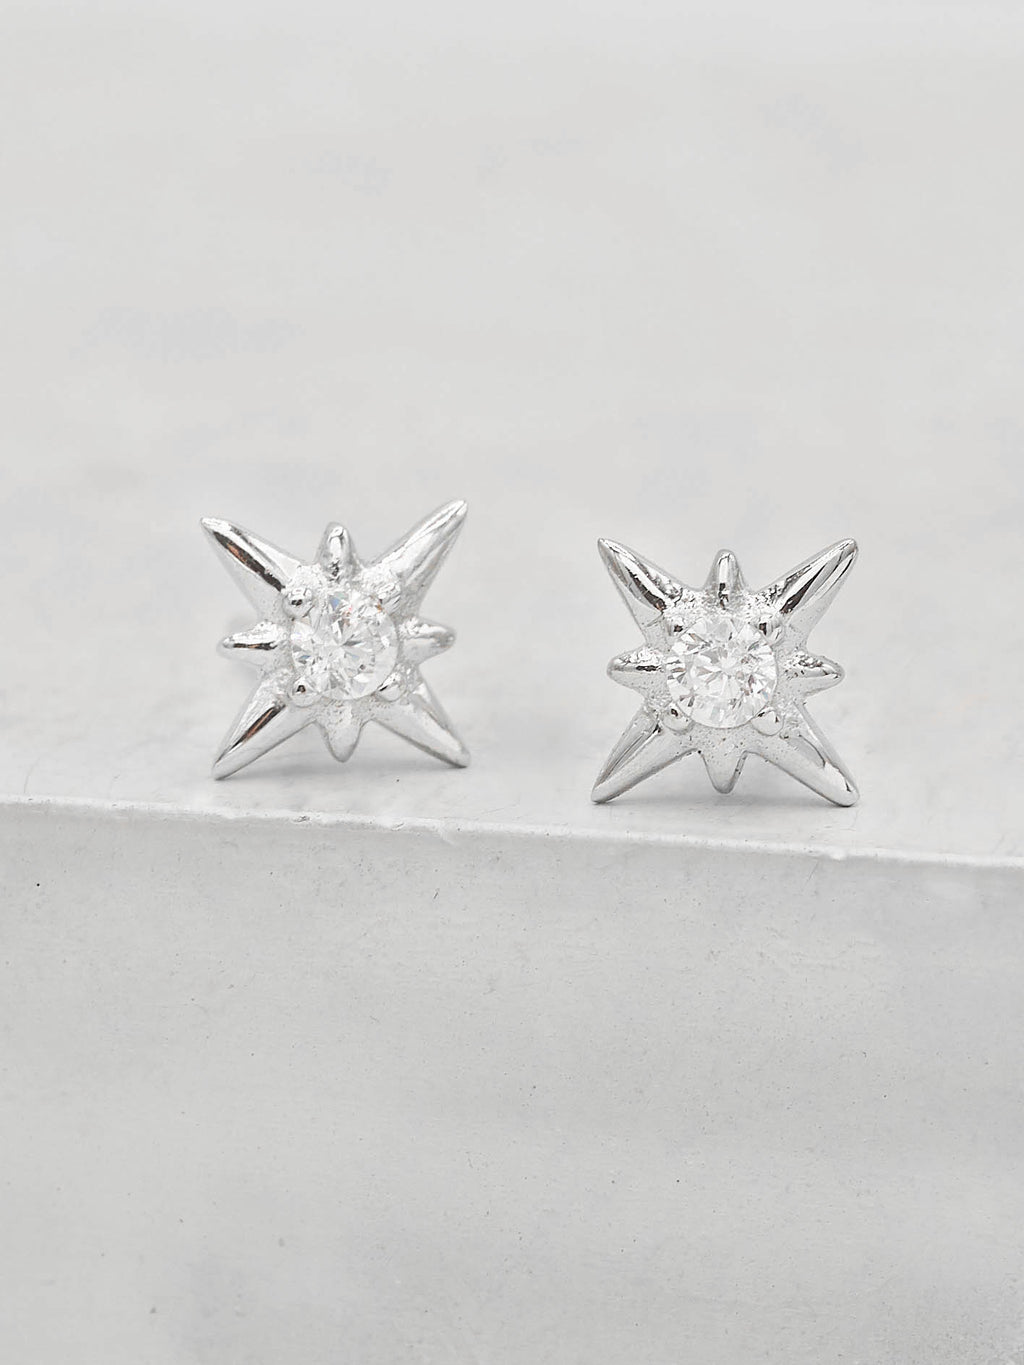 Silver North Star Design Stud with Round White CZ Minimalist Style Dainty Stud Earrings by The Faint hearted jewelry